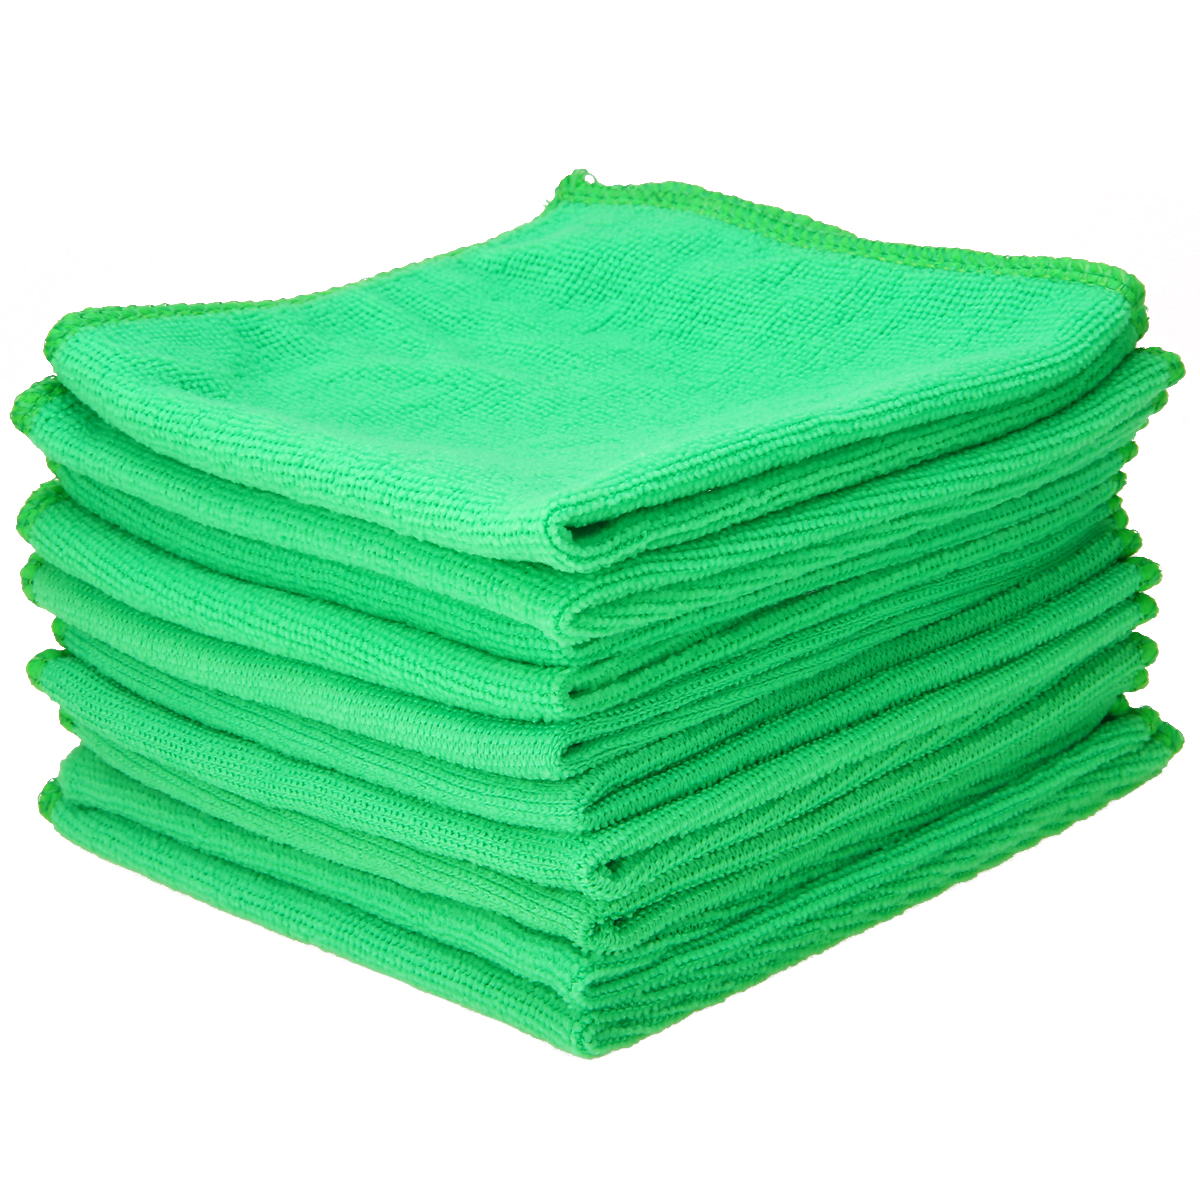 Image 3 - Mayitr 10 Pcs Car Microfiber Clean Towel 25*25CM Car Soft Microfiber Absorbent Wash Cleaning Polish Towel Cloth-in Sponges, Cloths & Brushes from Automobiles & Motorcycles